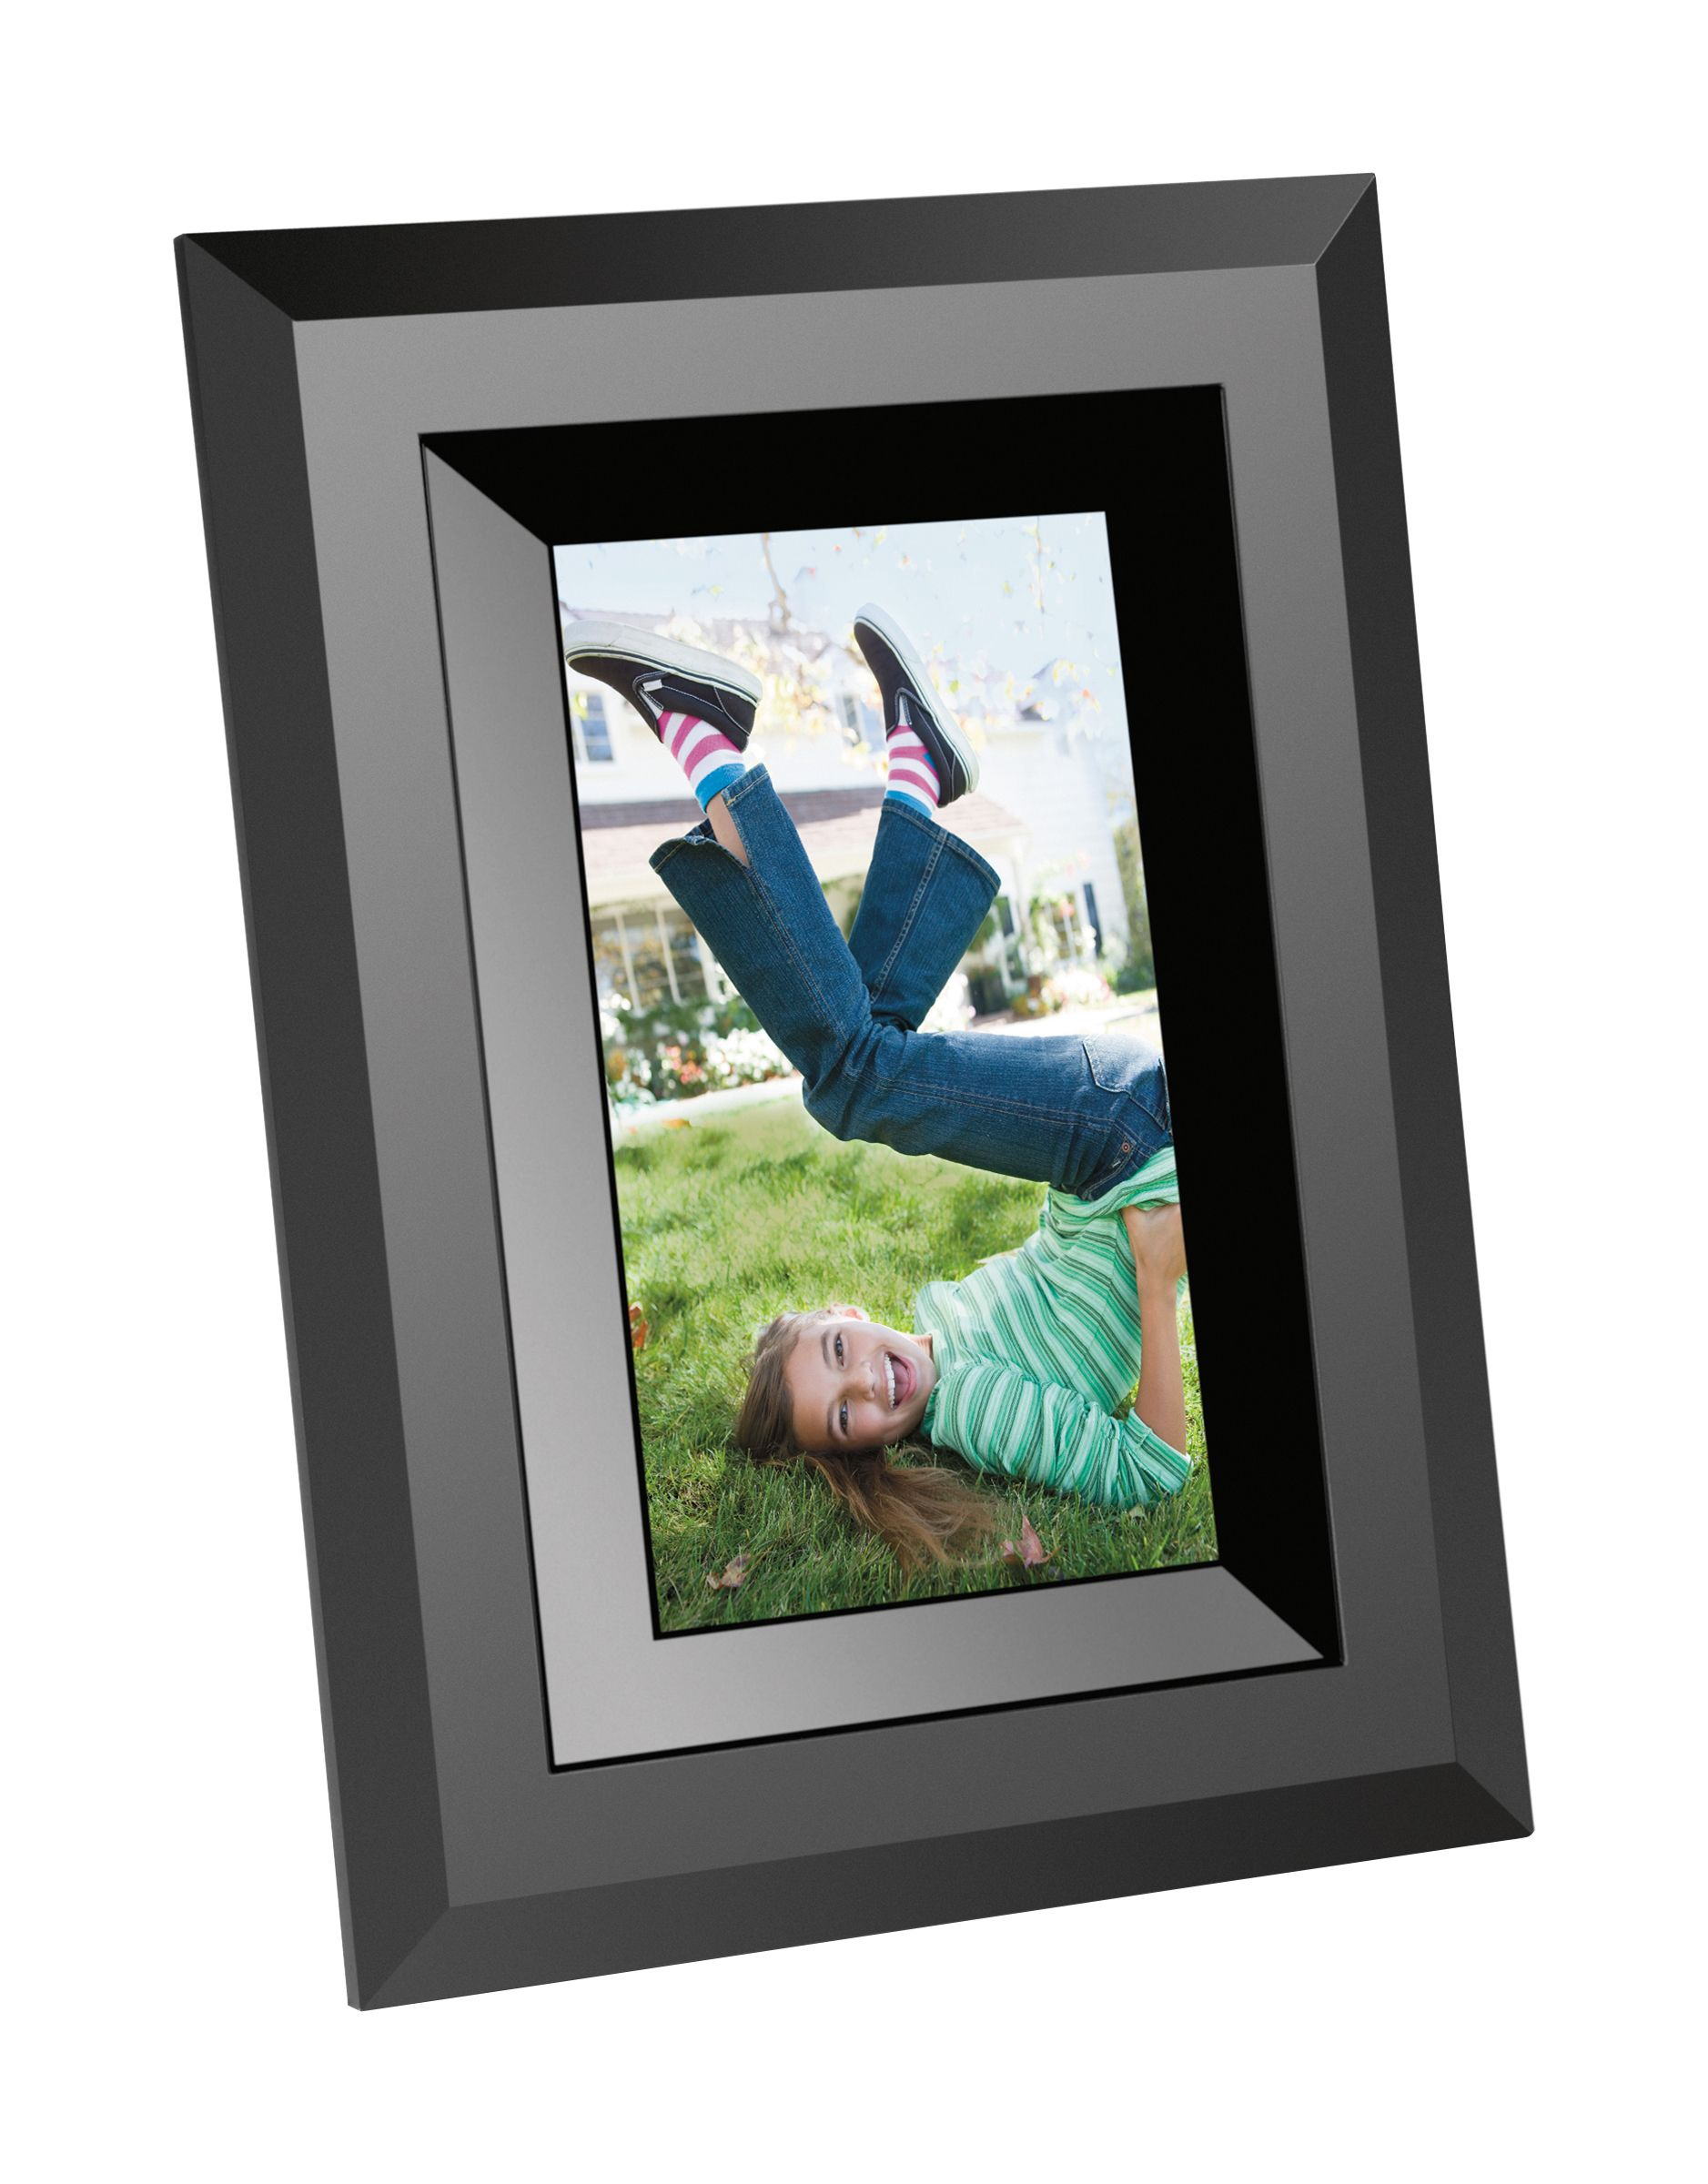 Kmart Digital Photo Frame Kodak Kod 8776809 Kodak Digital Picture 10 Quot Wifi Frame